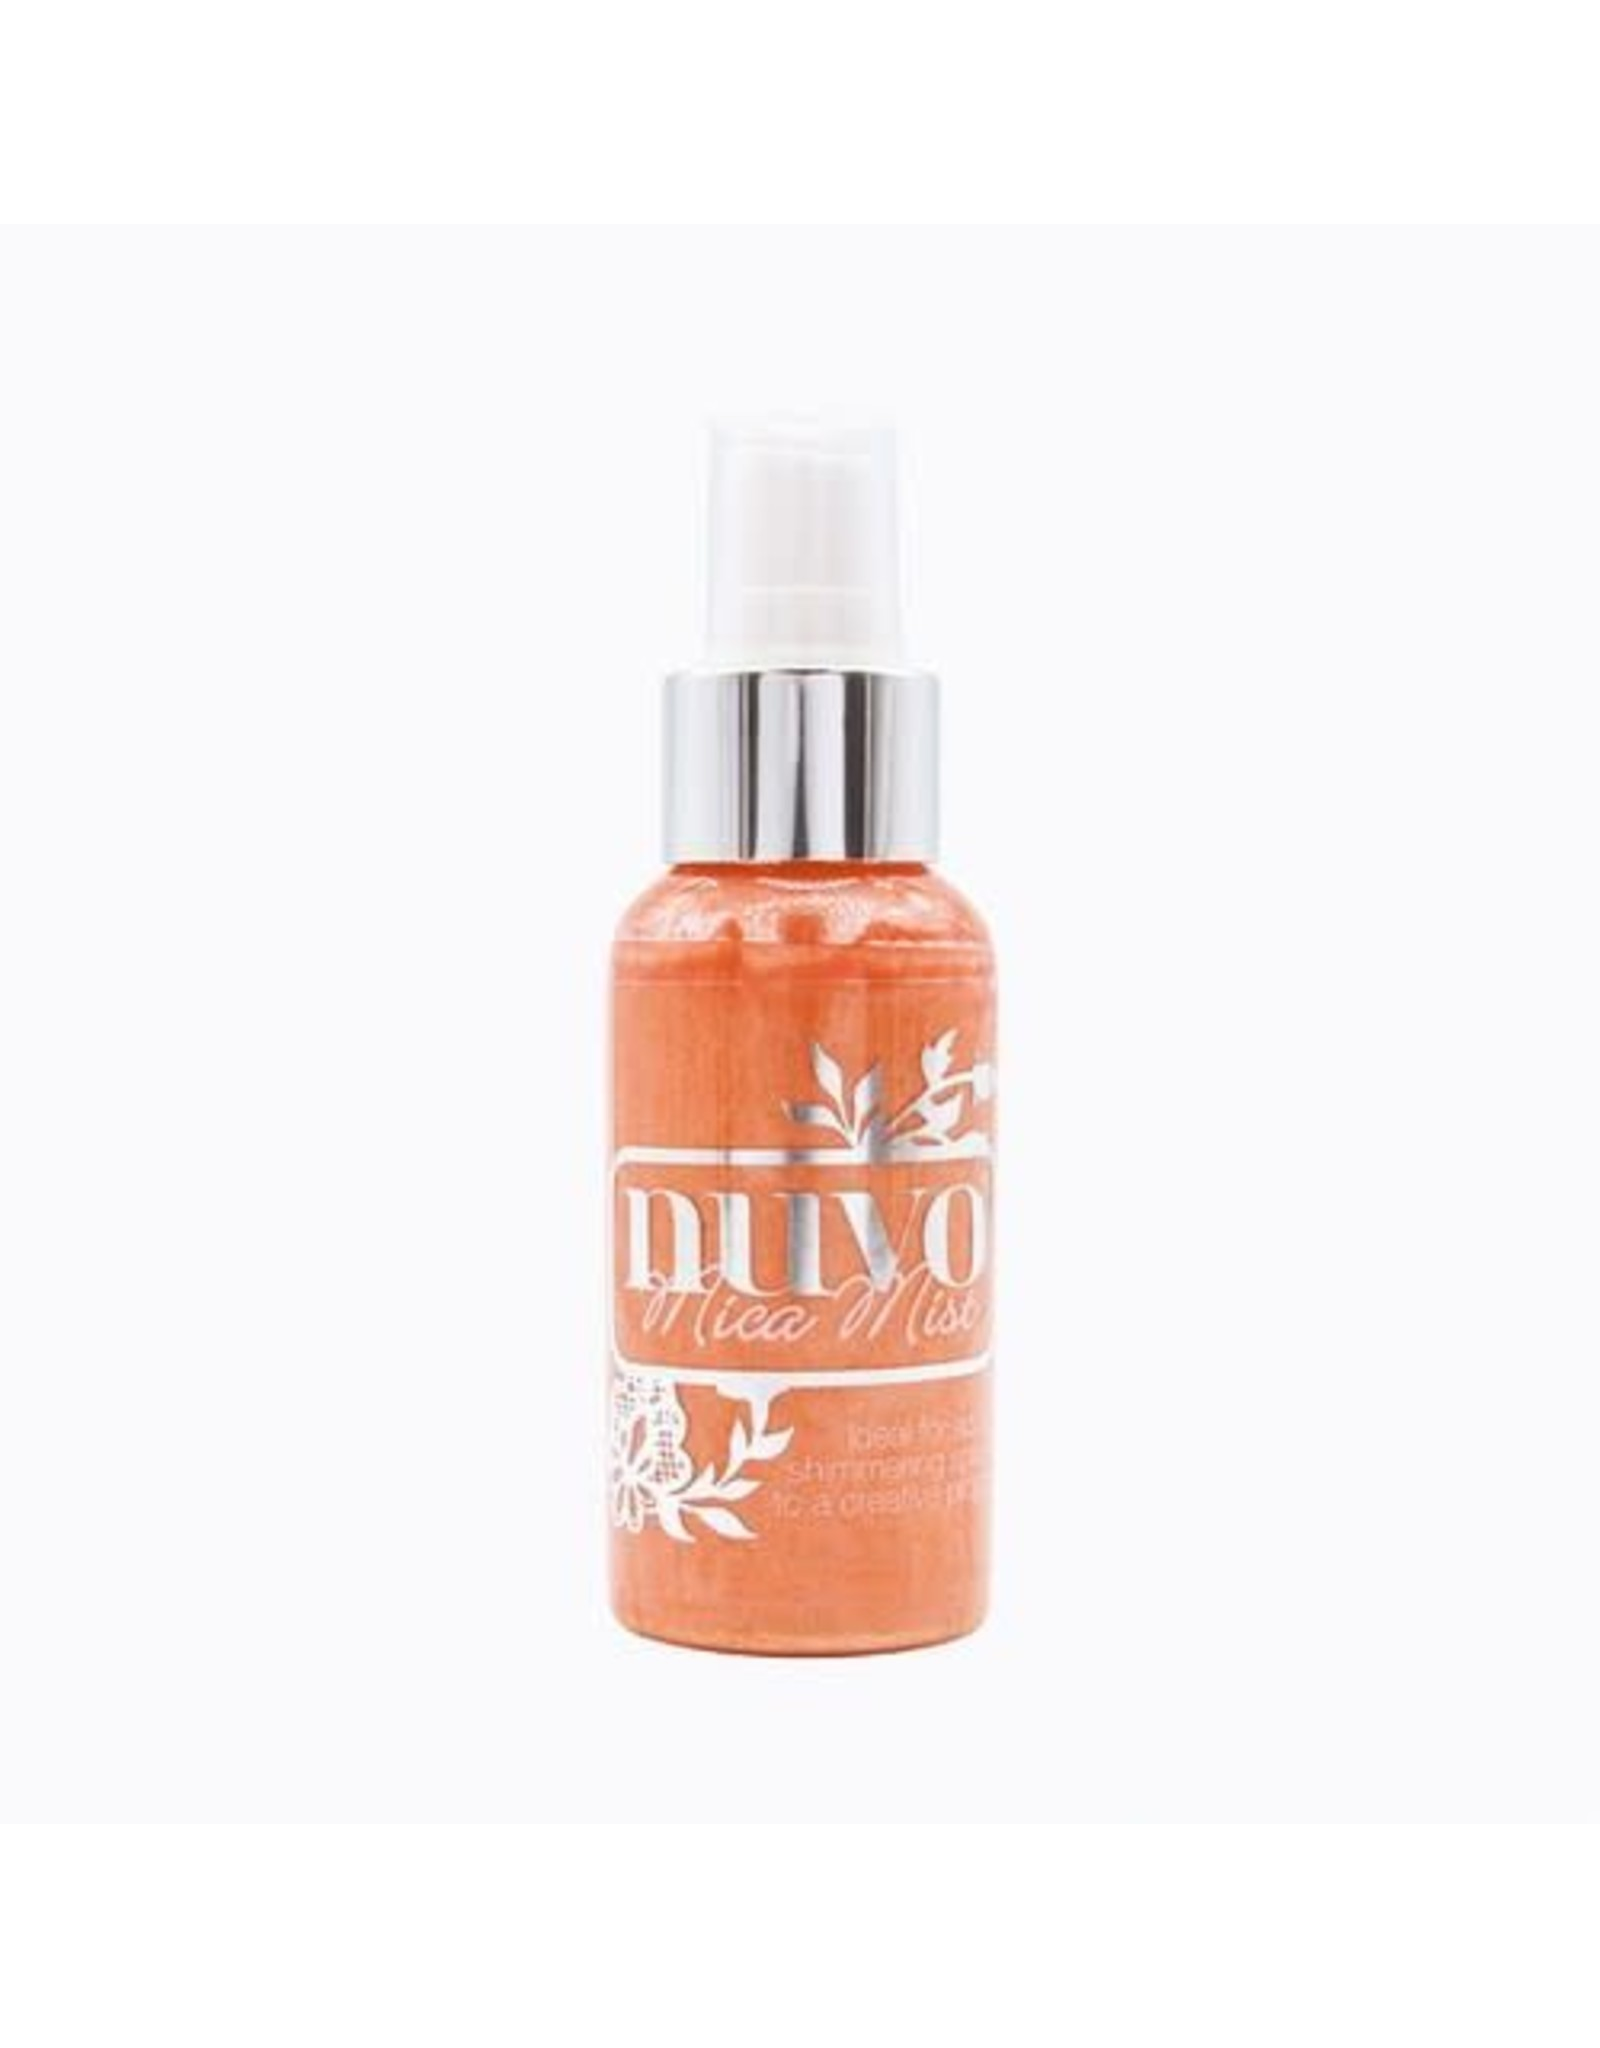 Nuvo by tonic Nuvo Mica mist - pecan peach 565N